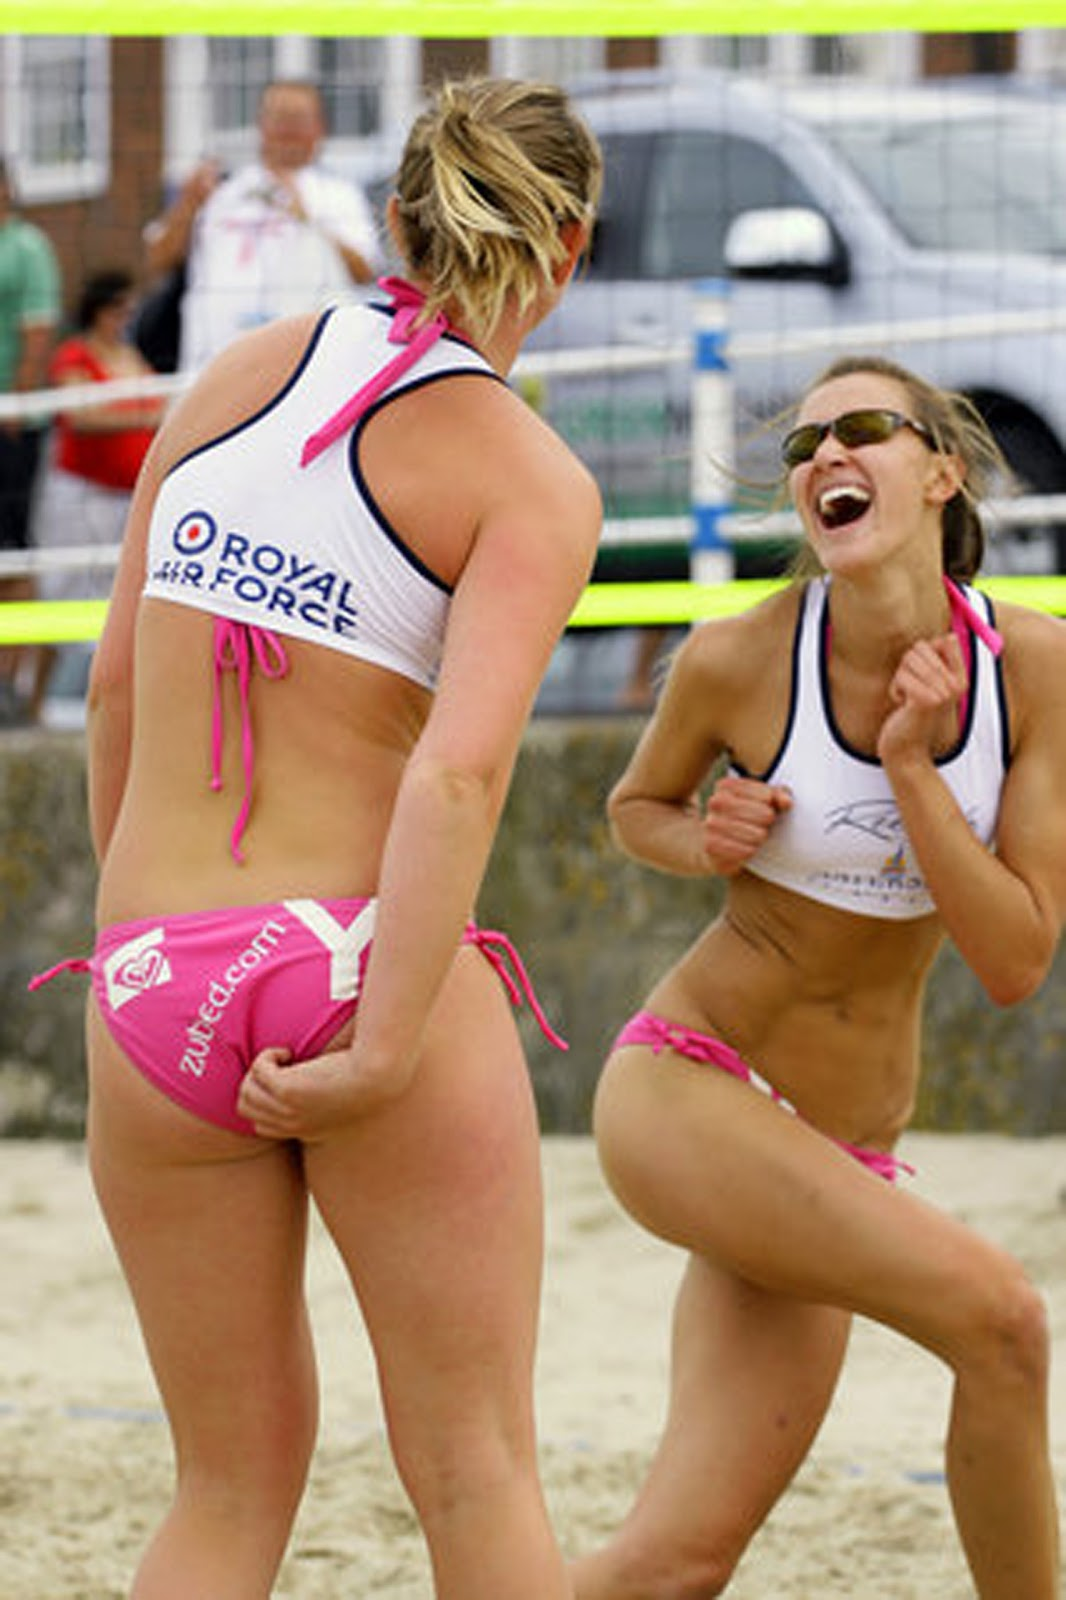 London Olympic Wallpaper Beach Volleyball Pictures-5961